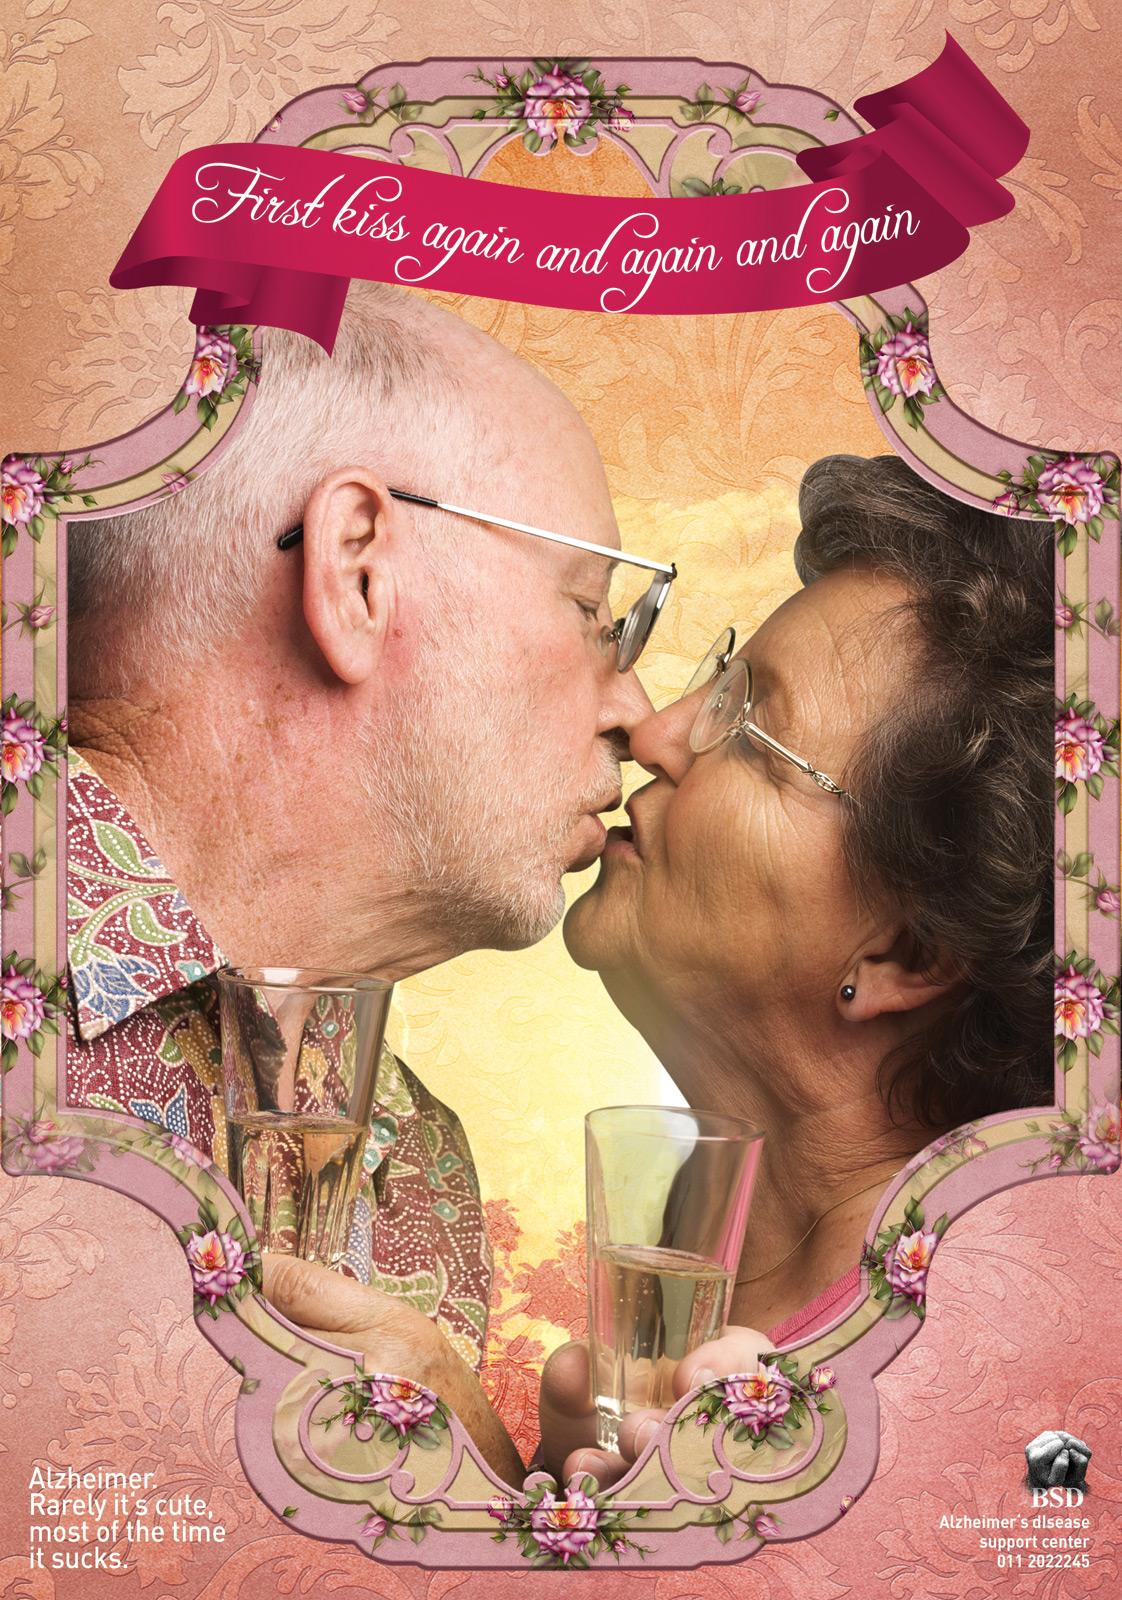 Alzheimer's disease support center Print Ad -  Kiss